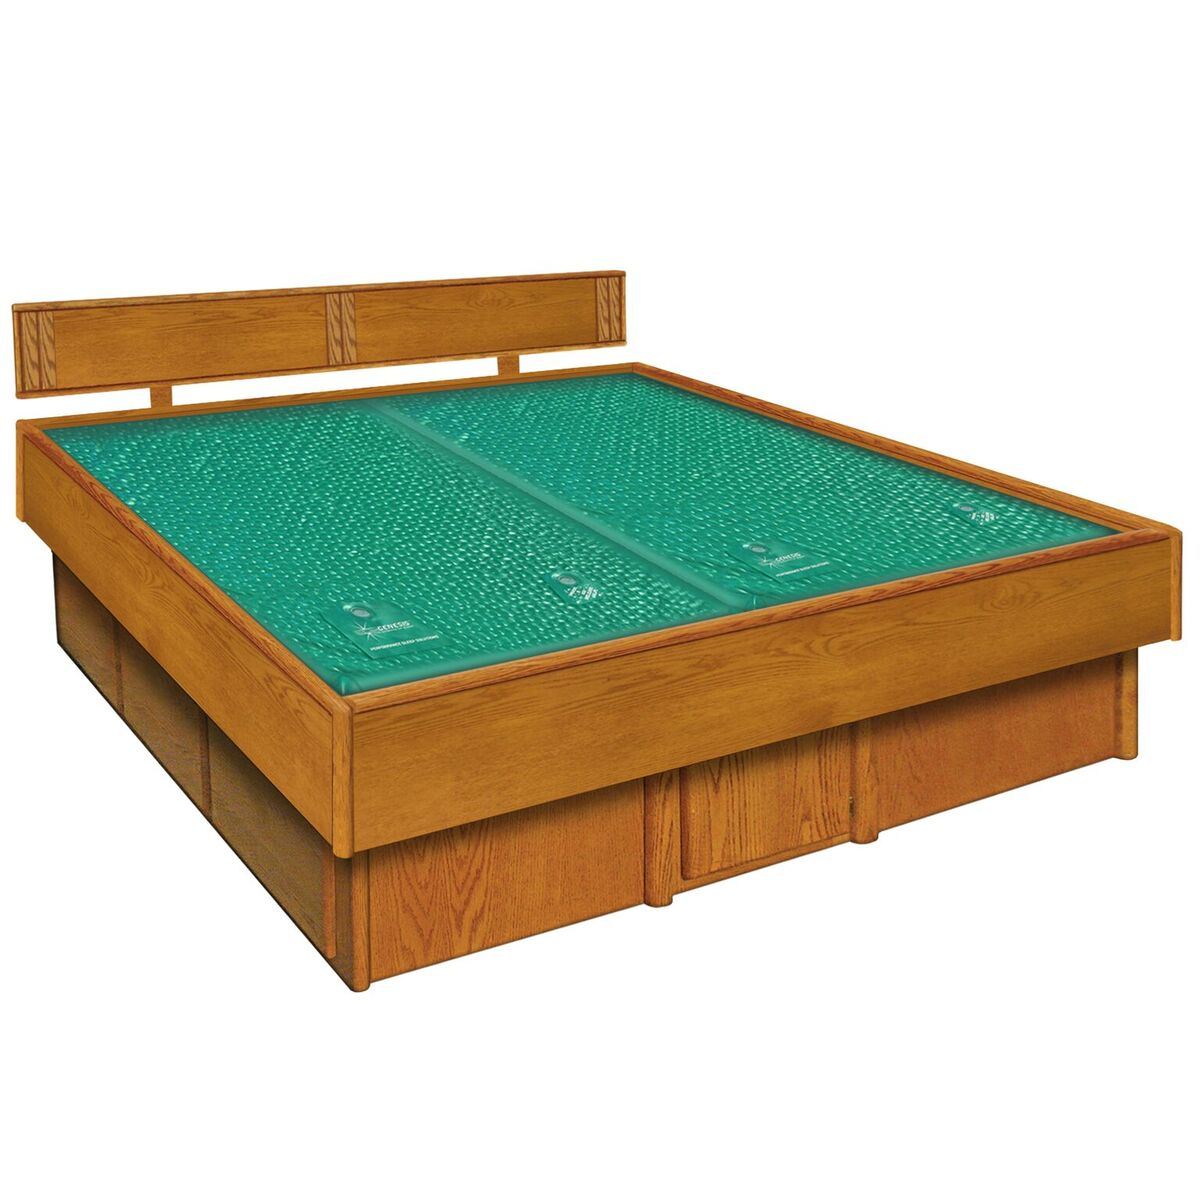 5 Board Waterbed Preview Jpeg Country Waterbed Store